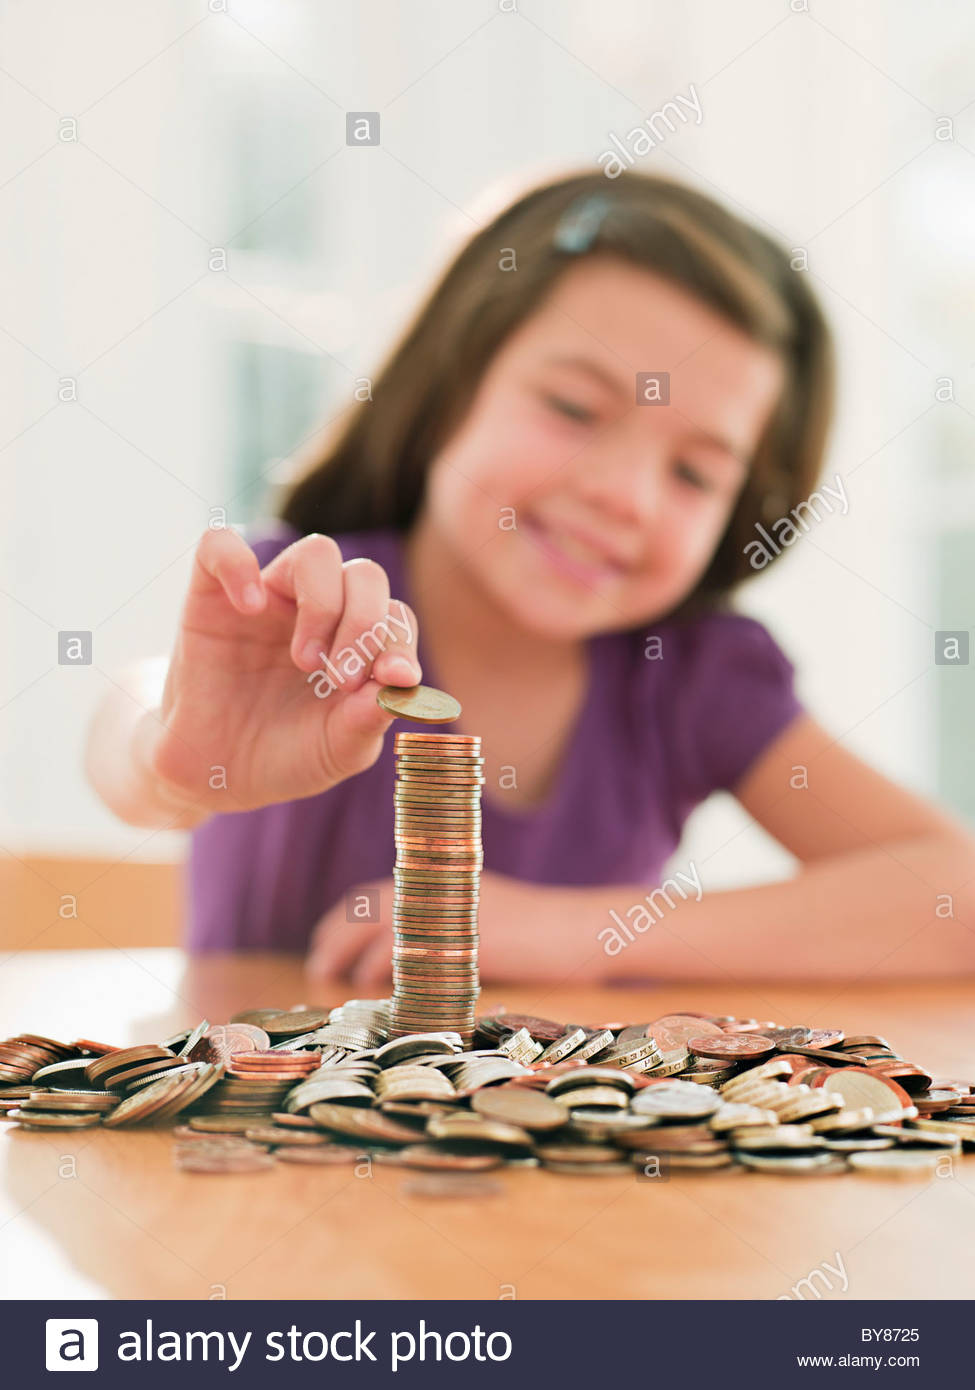 Smiling girl stacking coins - Stock Image